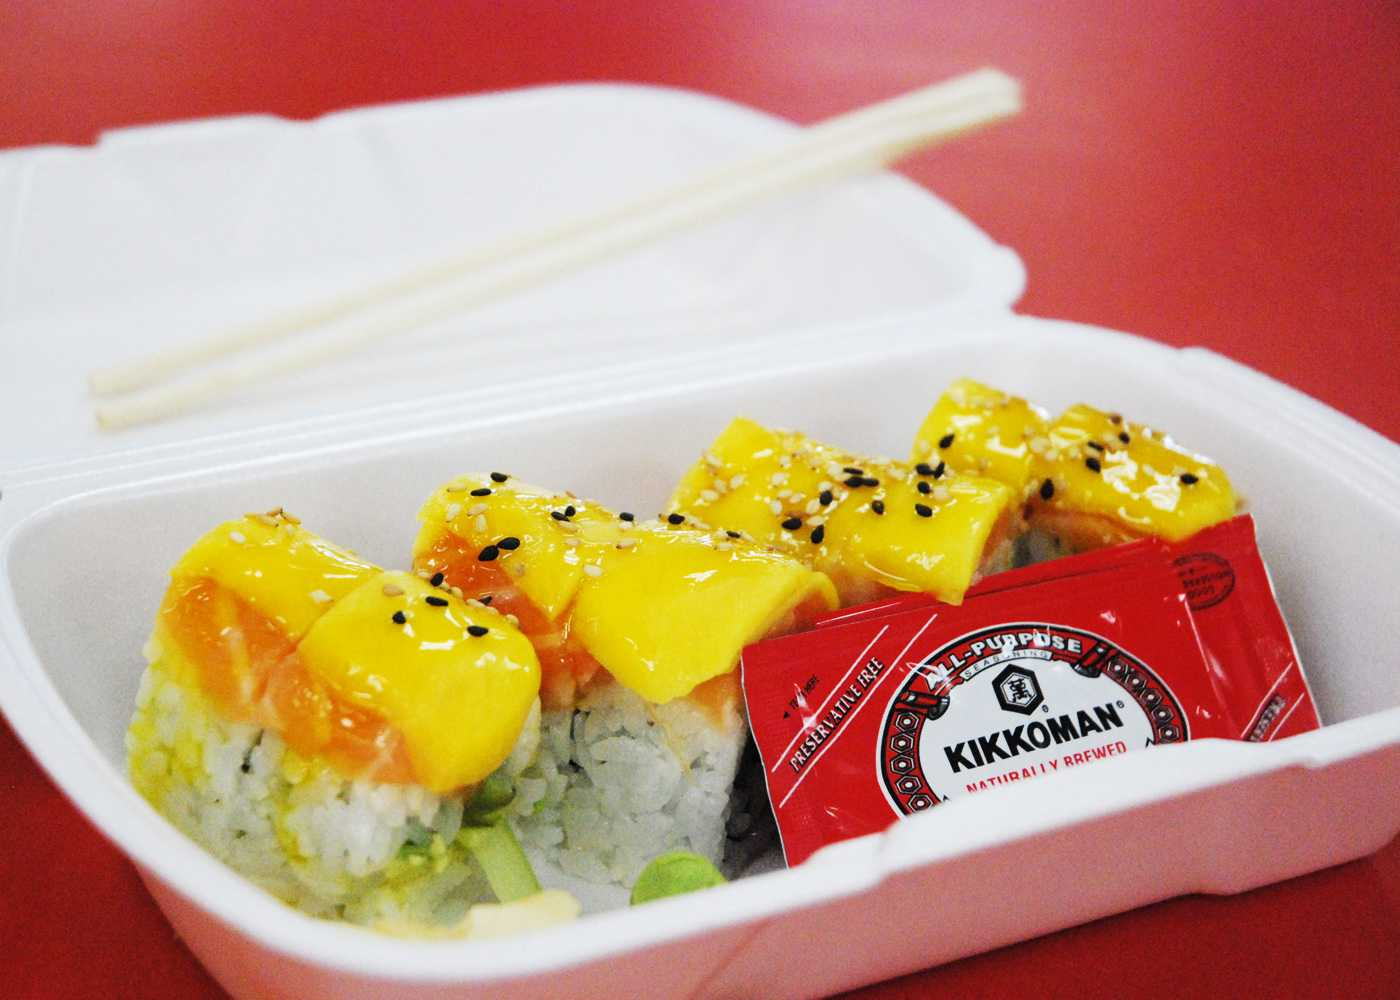 Hooked On Mesa Sushi Bar and Grill's